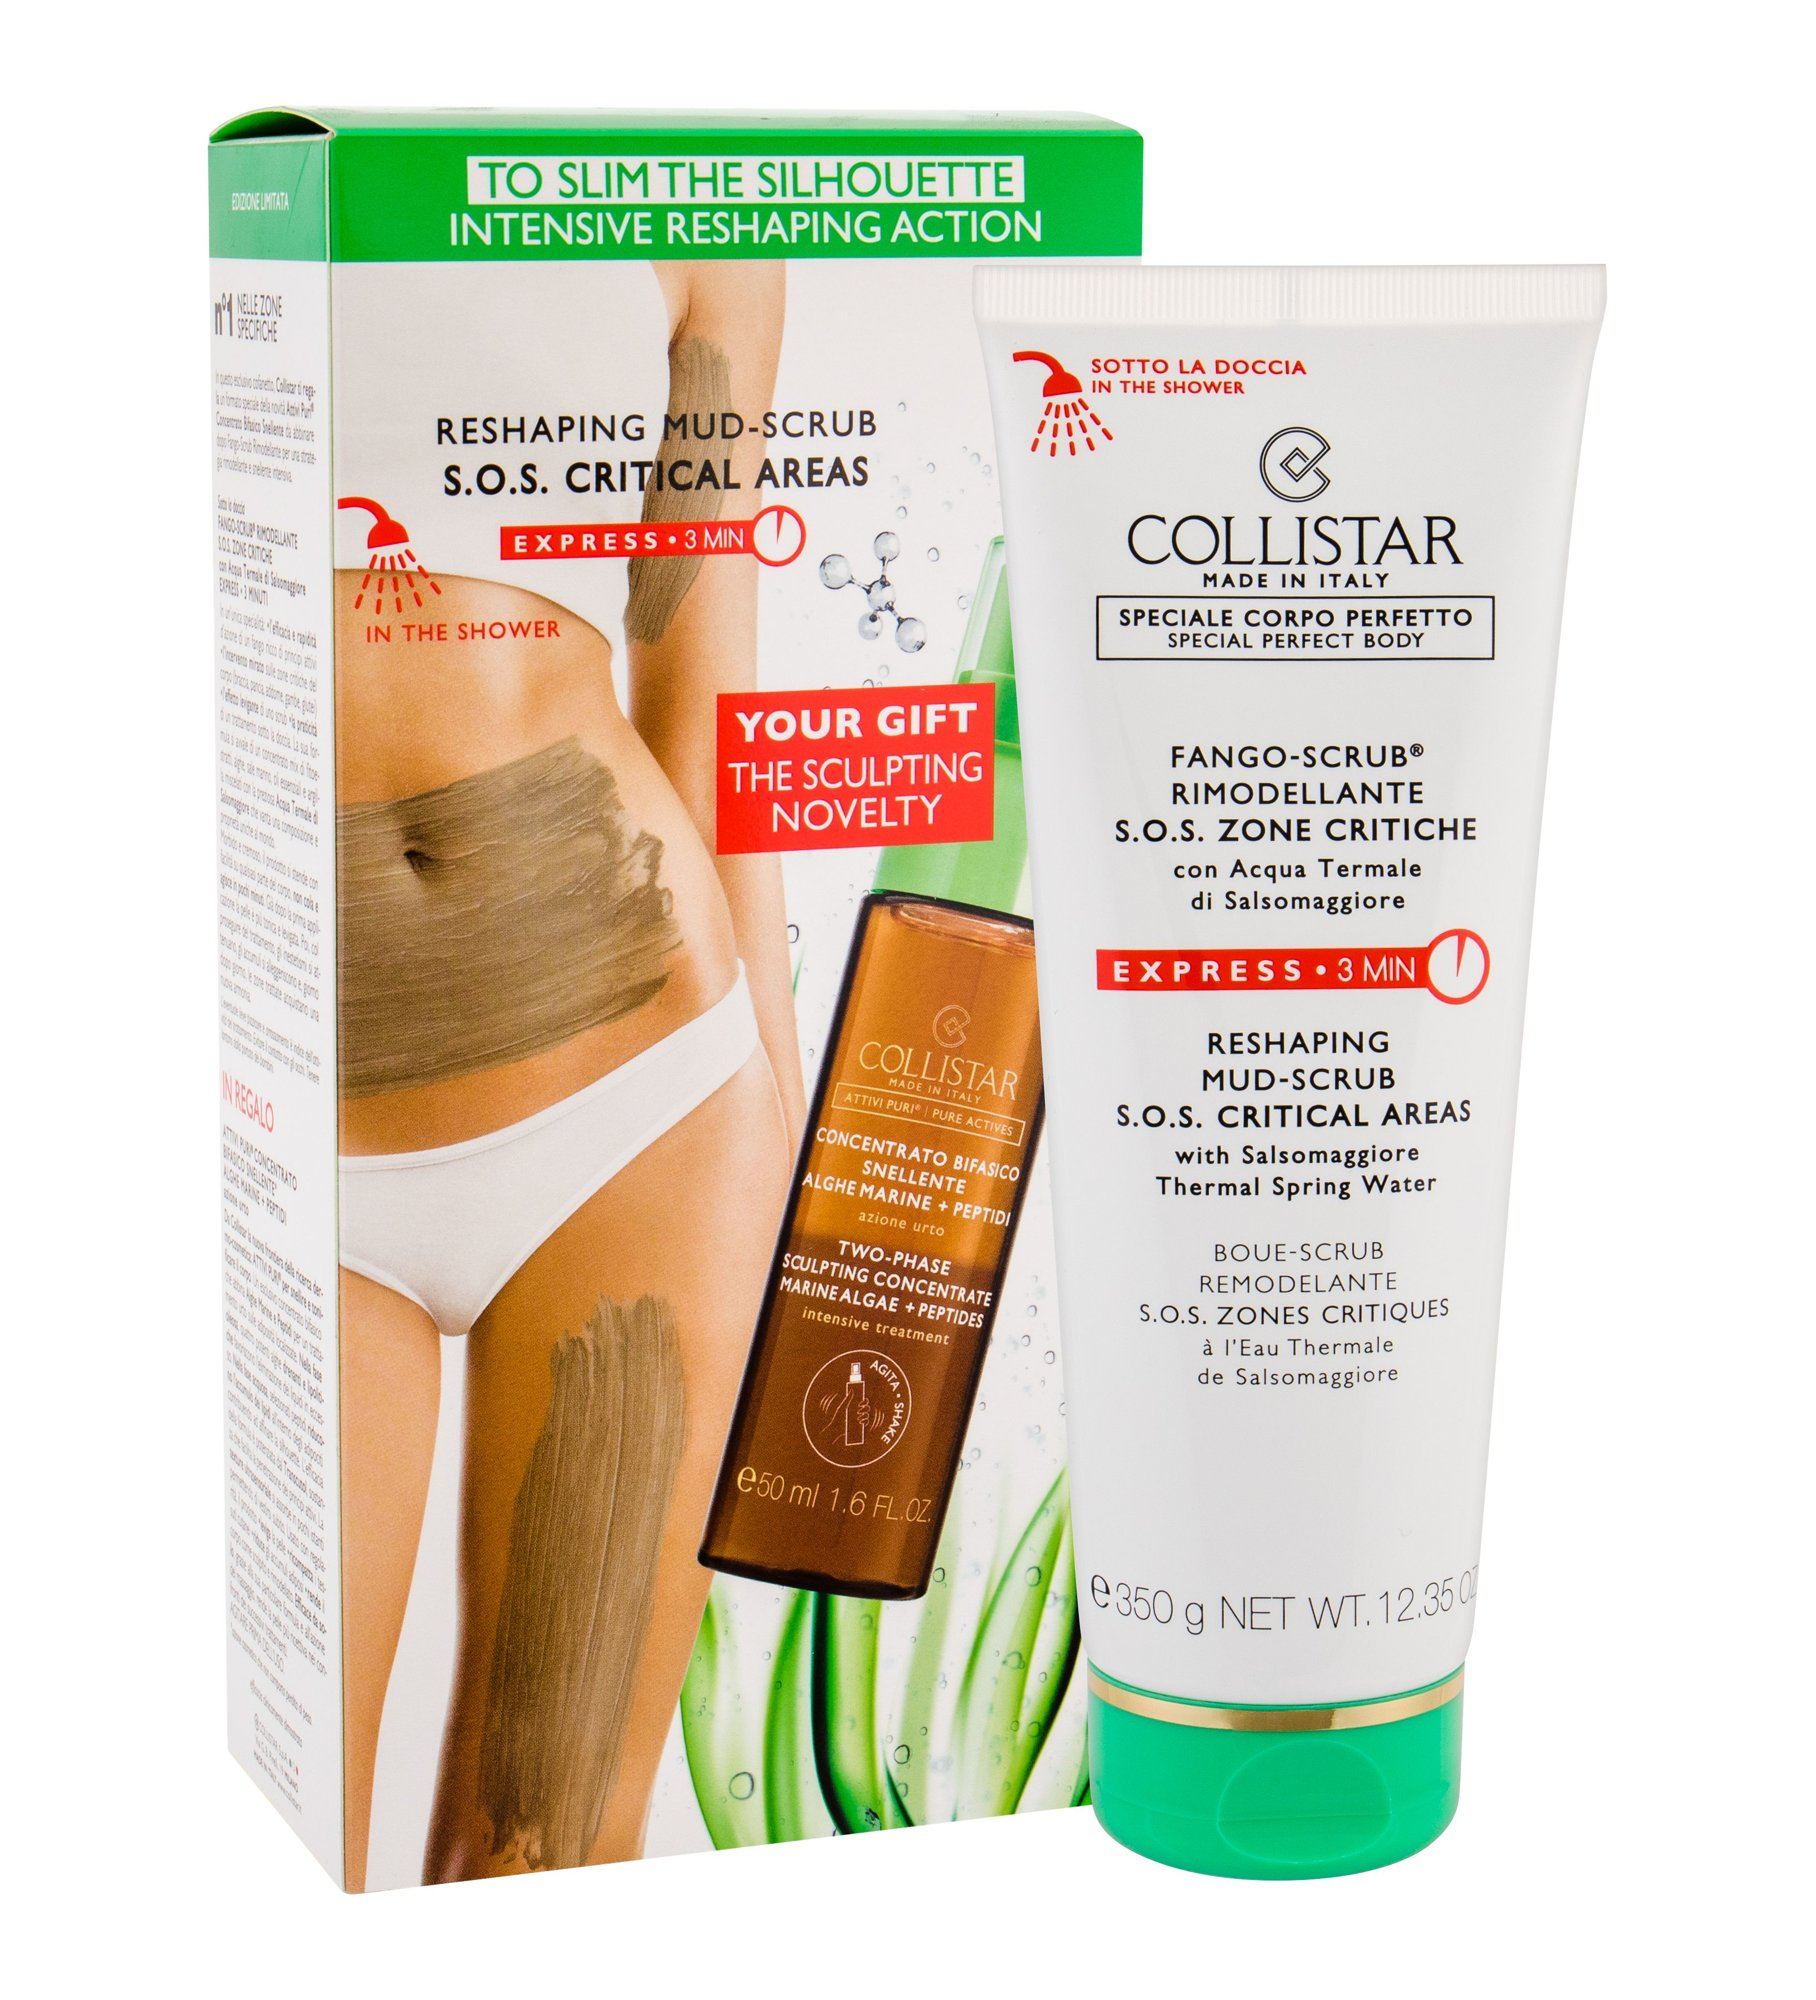 Collistar Special Perfect Body Body Peeling 350ml